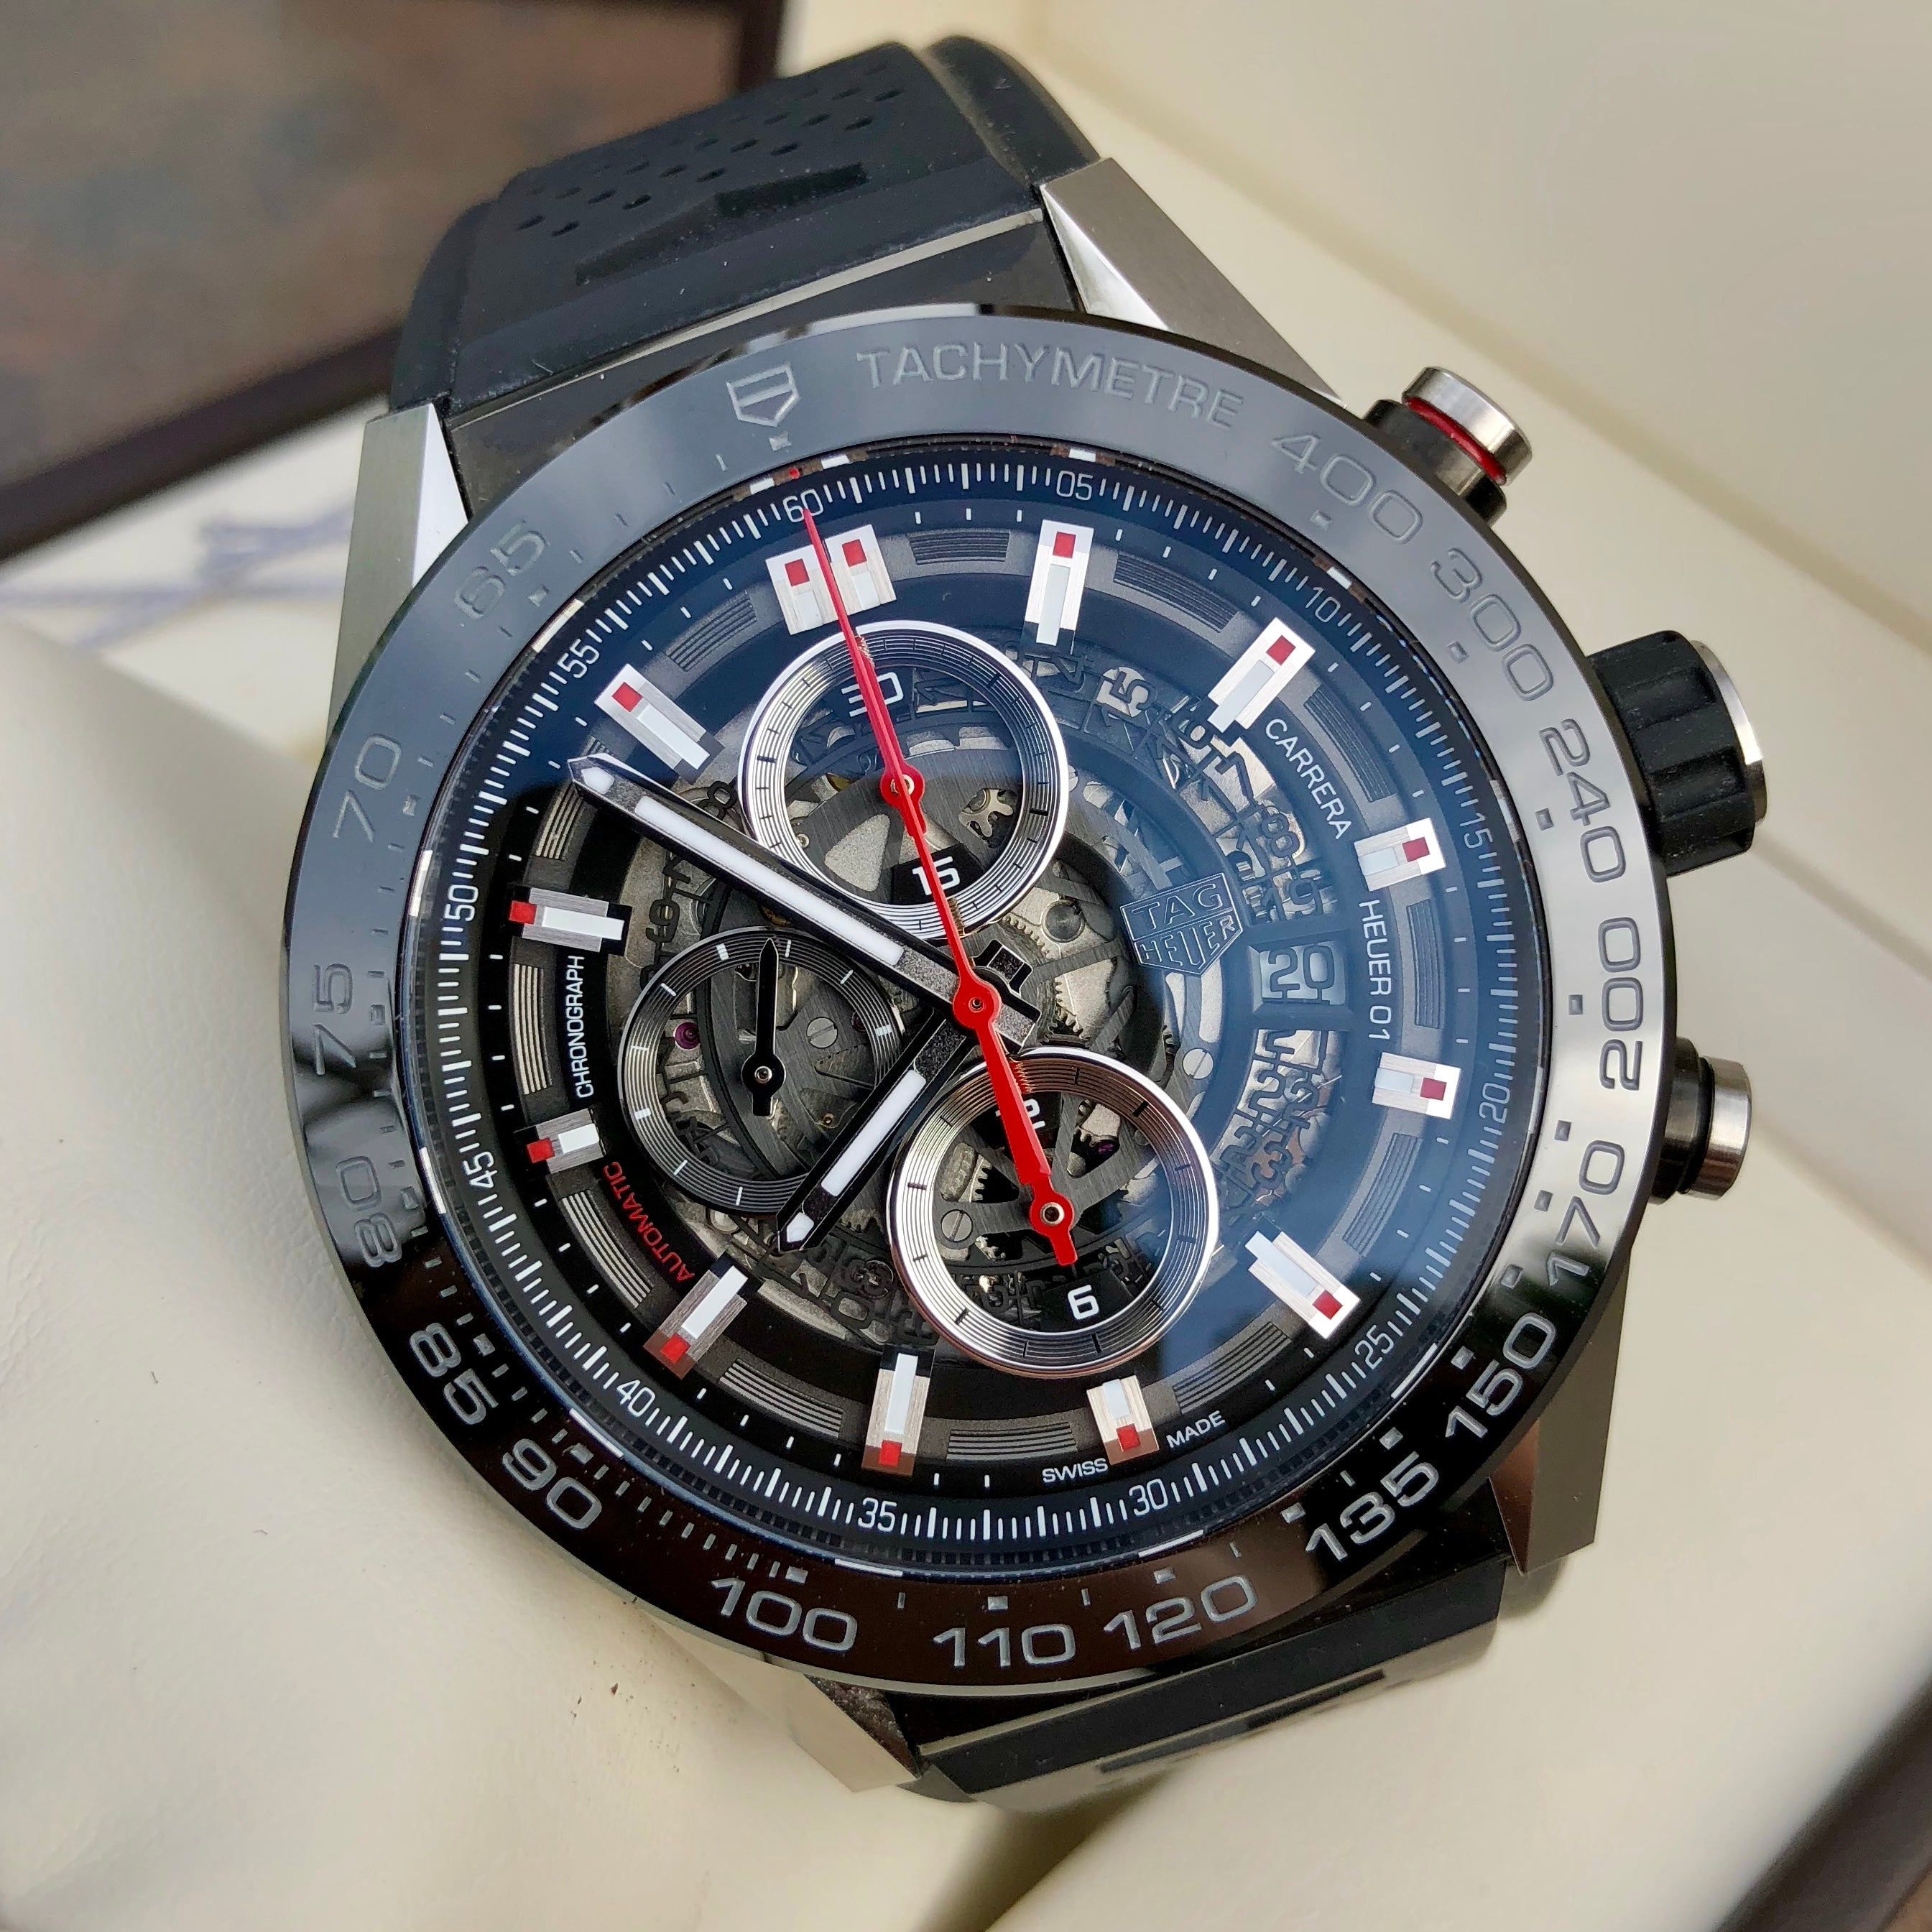 Tag Heuer Carrera CAR2A1Z Calibre Heuer 01 Automatic  Skeleton Dial Chronograph Wristwatch